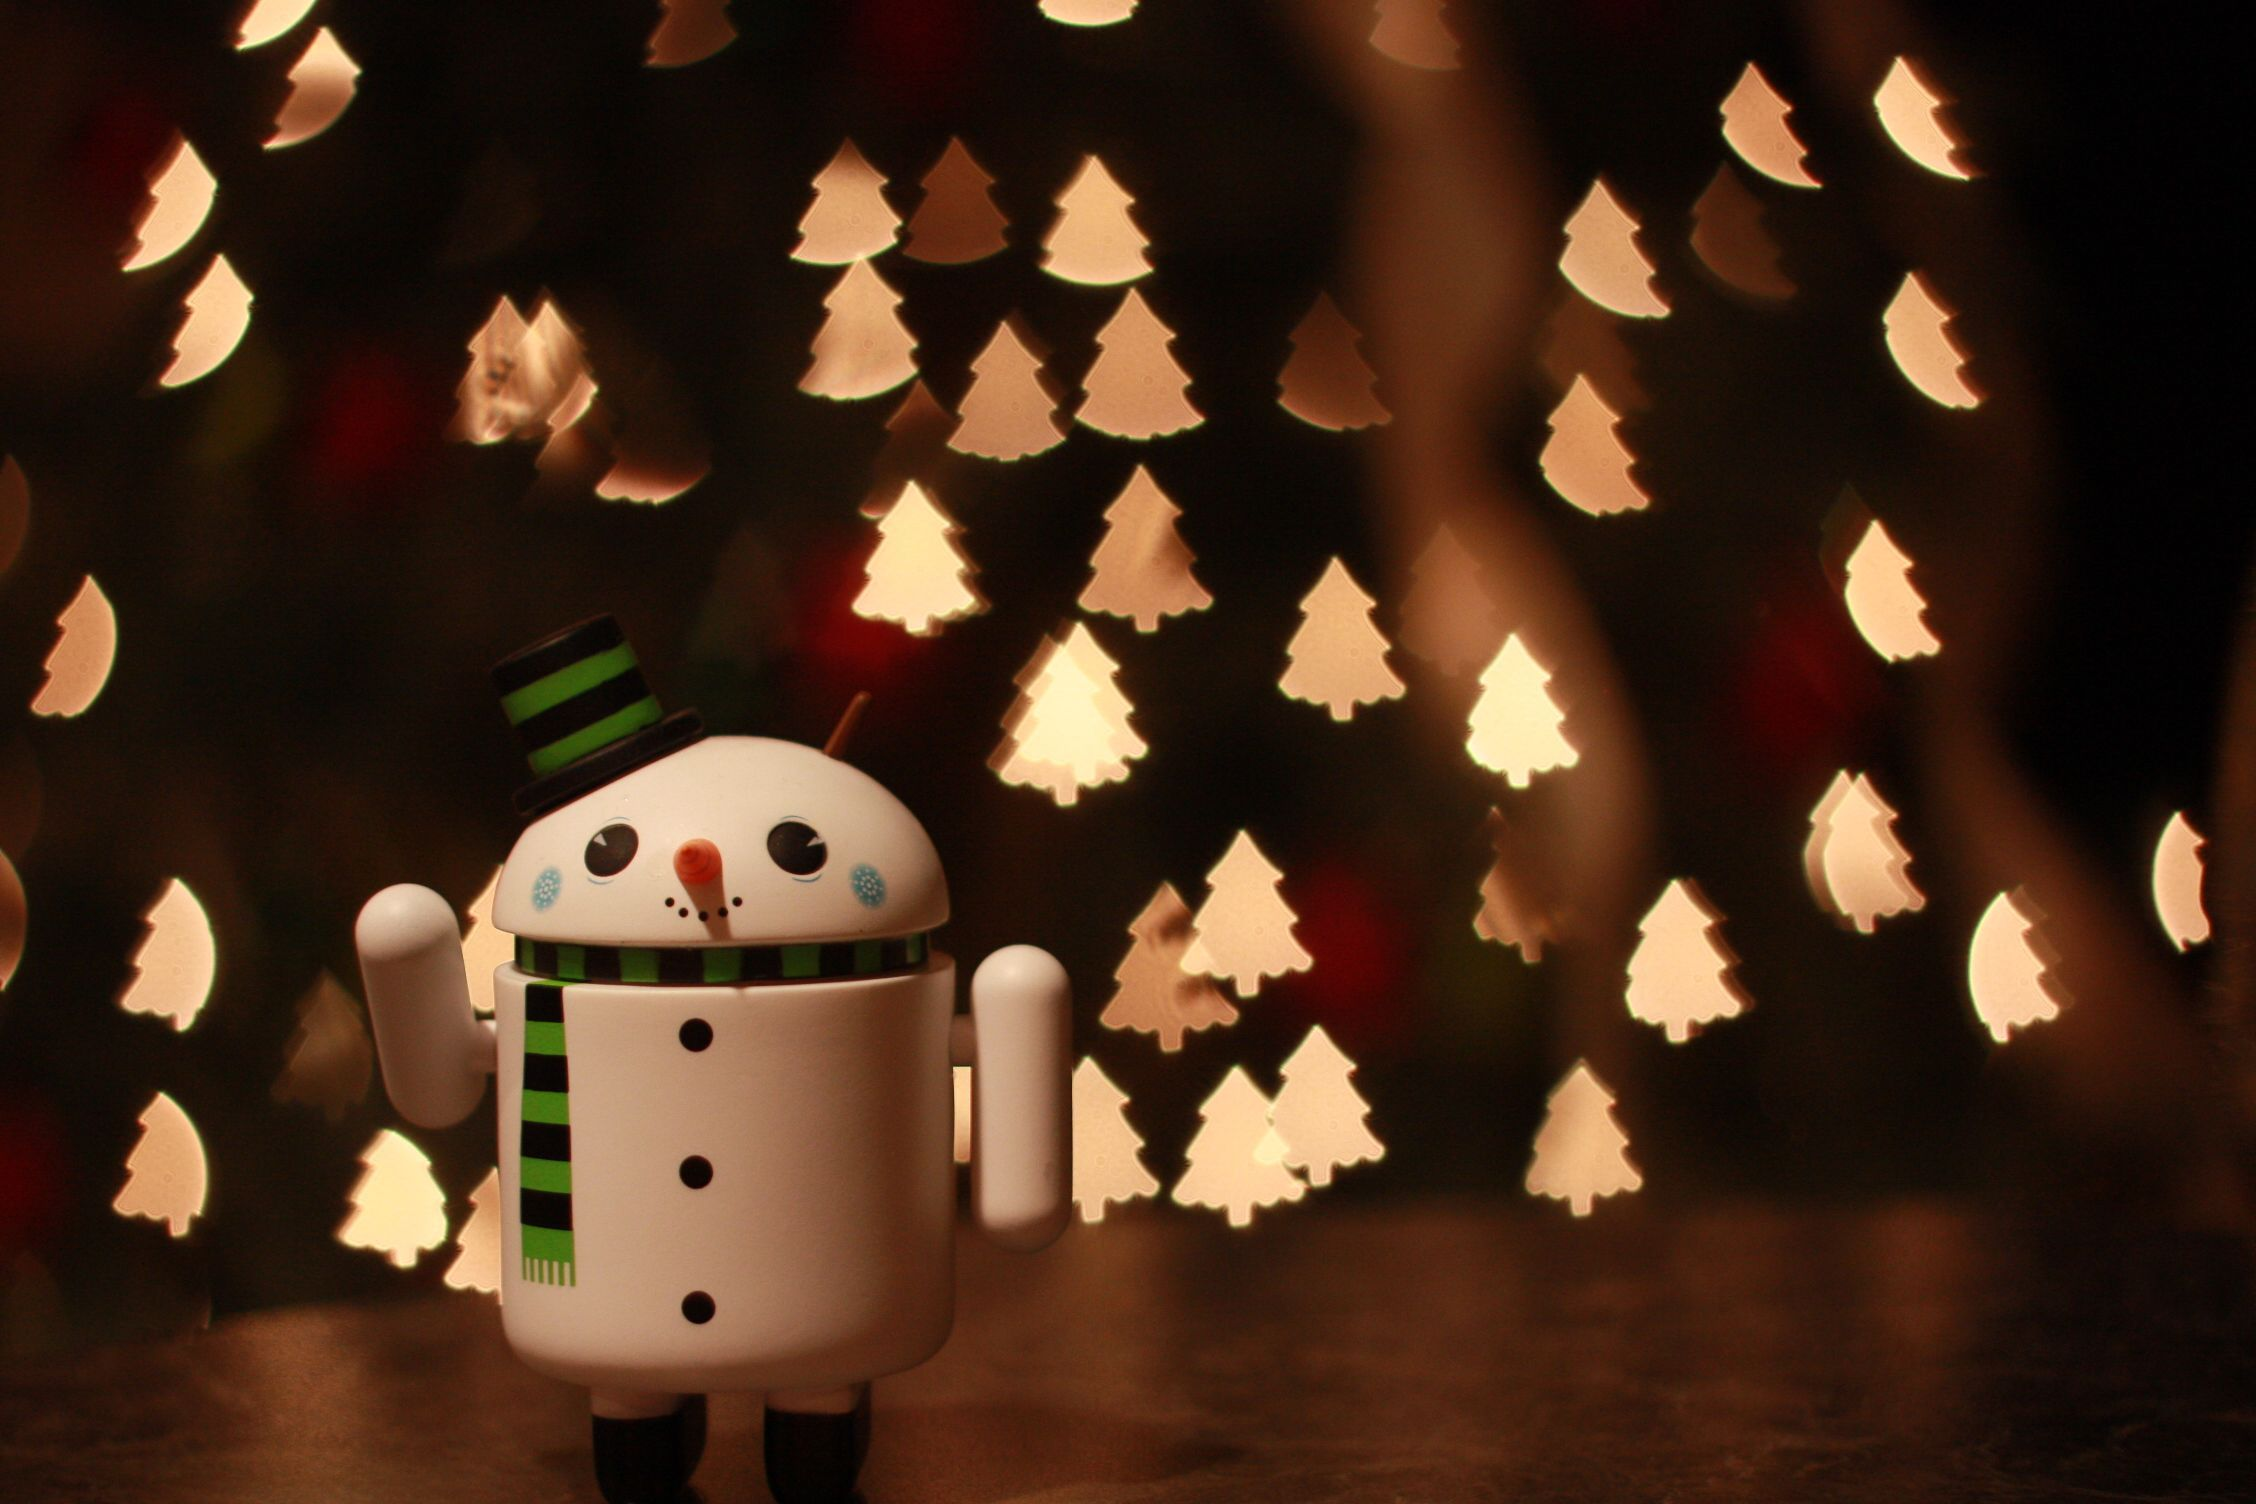 Index Php Christmas Wallpapers Tumblr Xmas Wallpaper Christmas Wallpaper Android